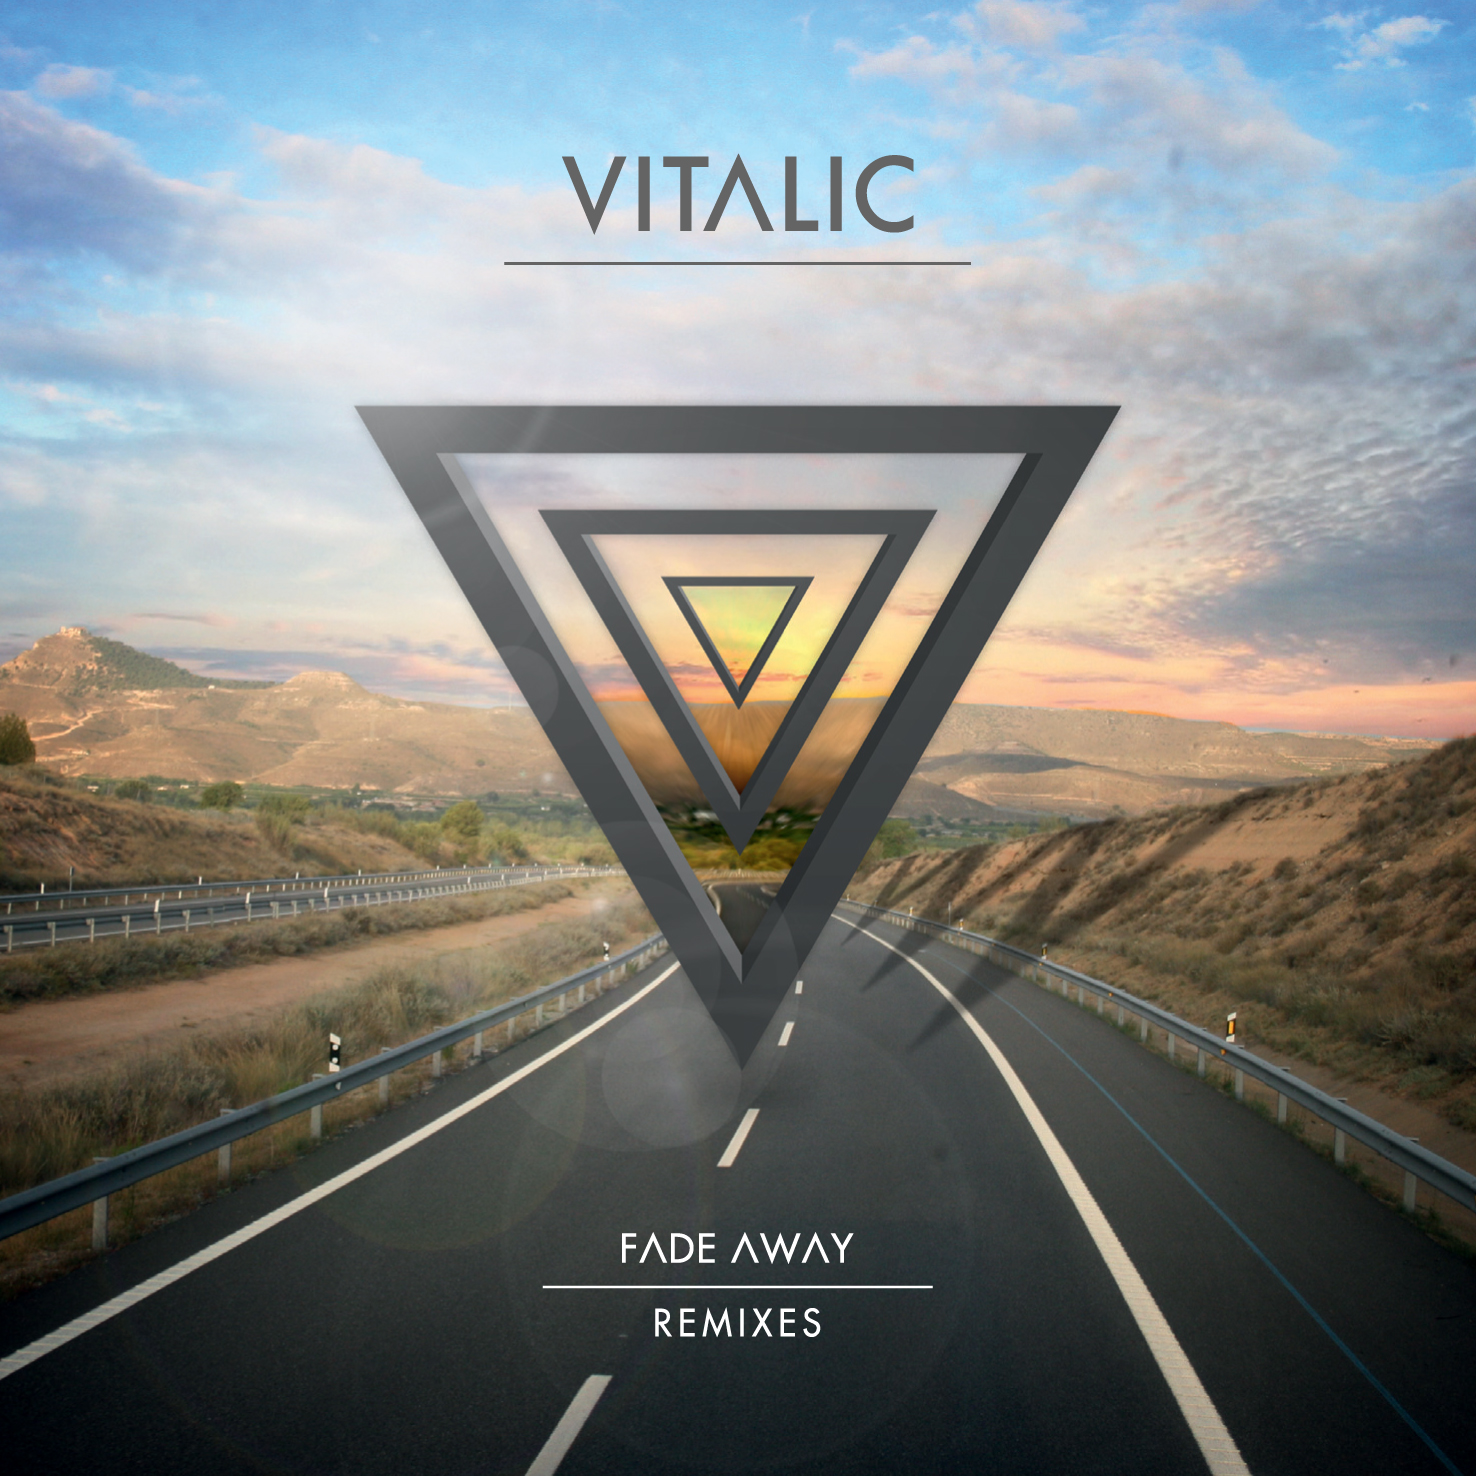 VITALIC_FADE-AWAY-REMIXES_PROMO-REMIXES_FRONT_medium